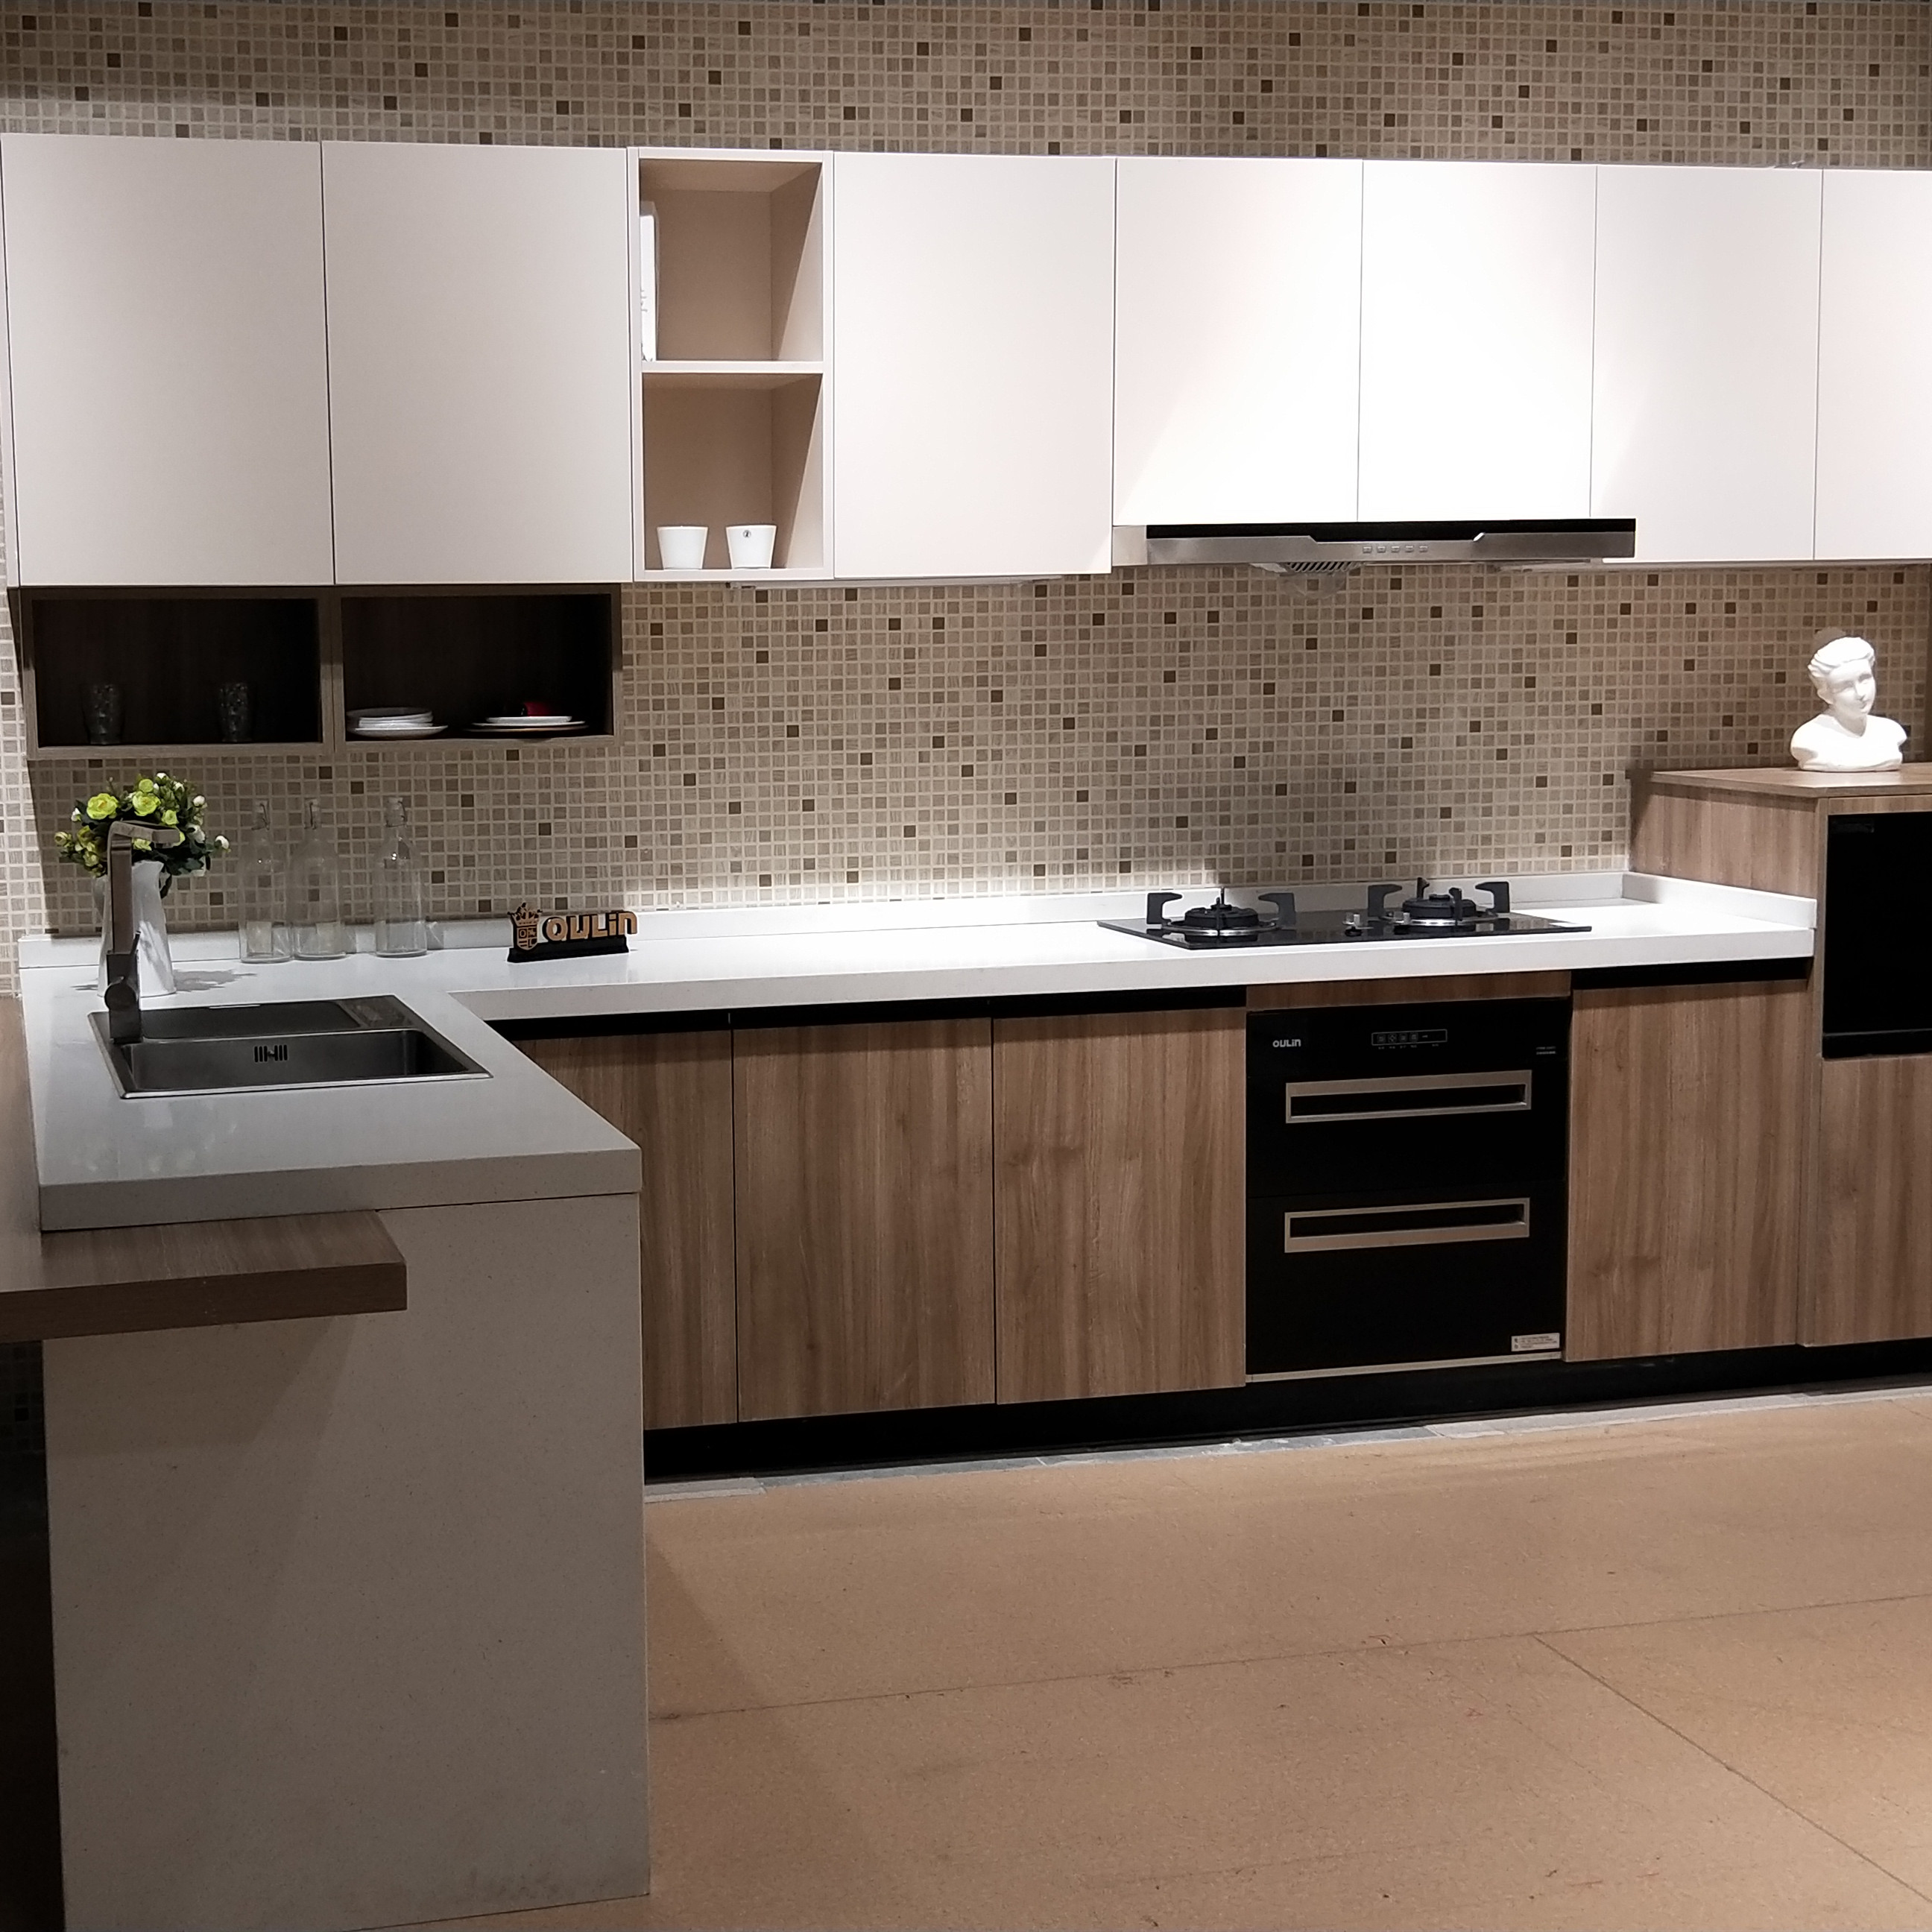 High Gloss Lacquer Kitchen Cabinet Doors Buy Kitchen Cabinet Door Cabinet Door High Gloss Lacquer Kitchen Cabinet Doors Product On Alibaba Com